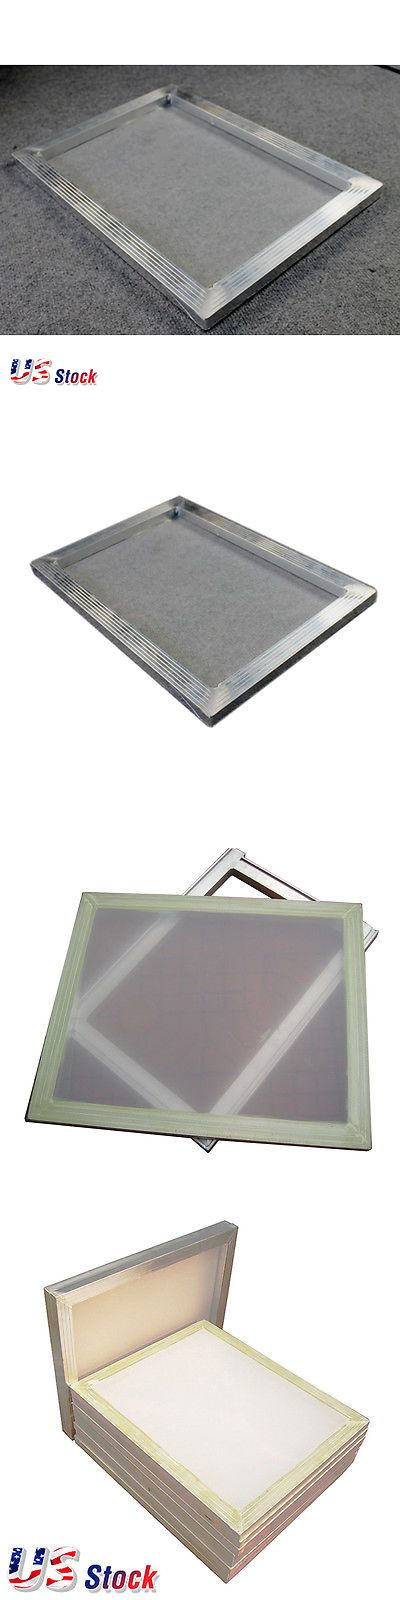 Screen Printing Frames 183114: Us Stock 6 Pcs 20 X 24 Inch Aluminum Screen With 110 White Mesh -> BUY IT NOW ONLY: $102 on eBay!